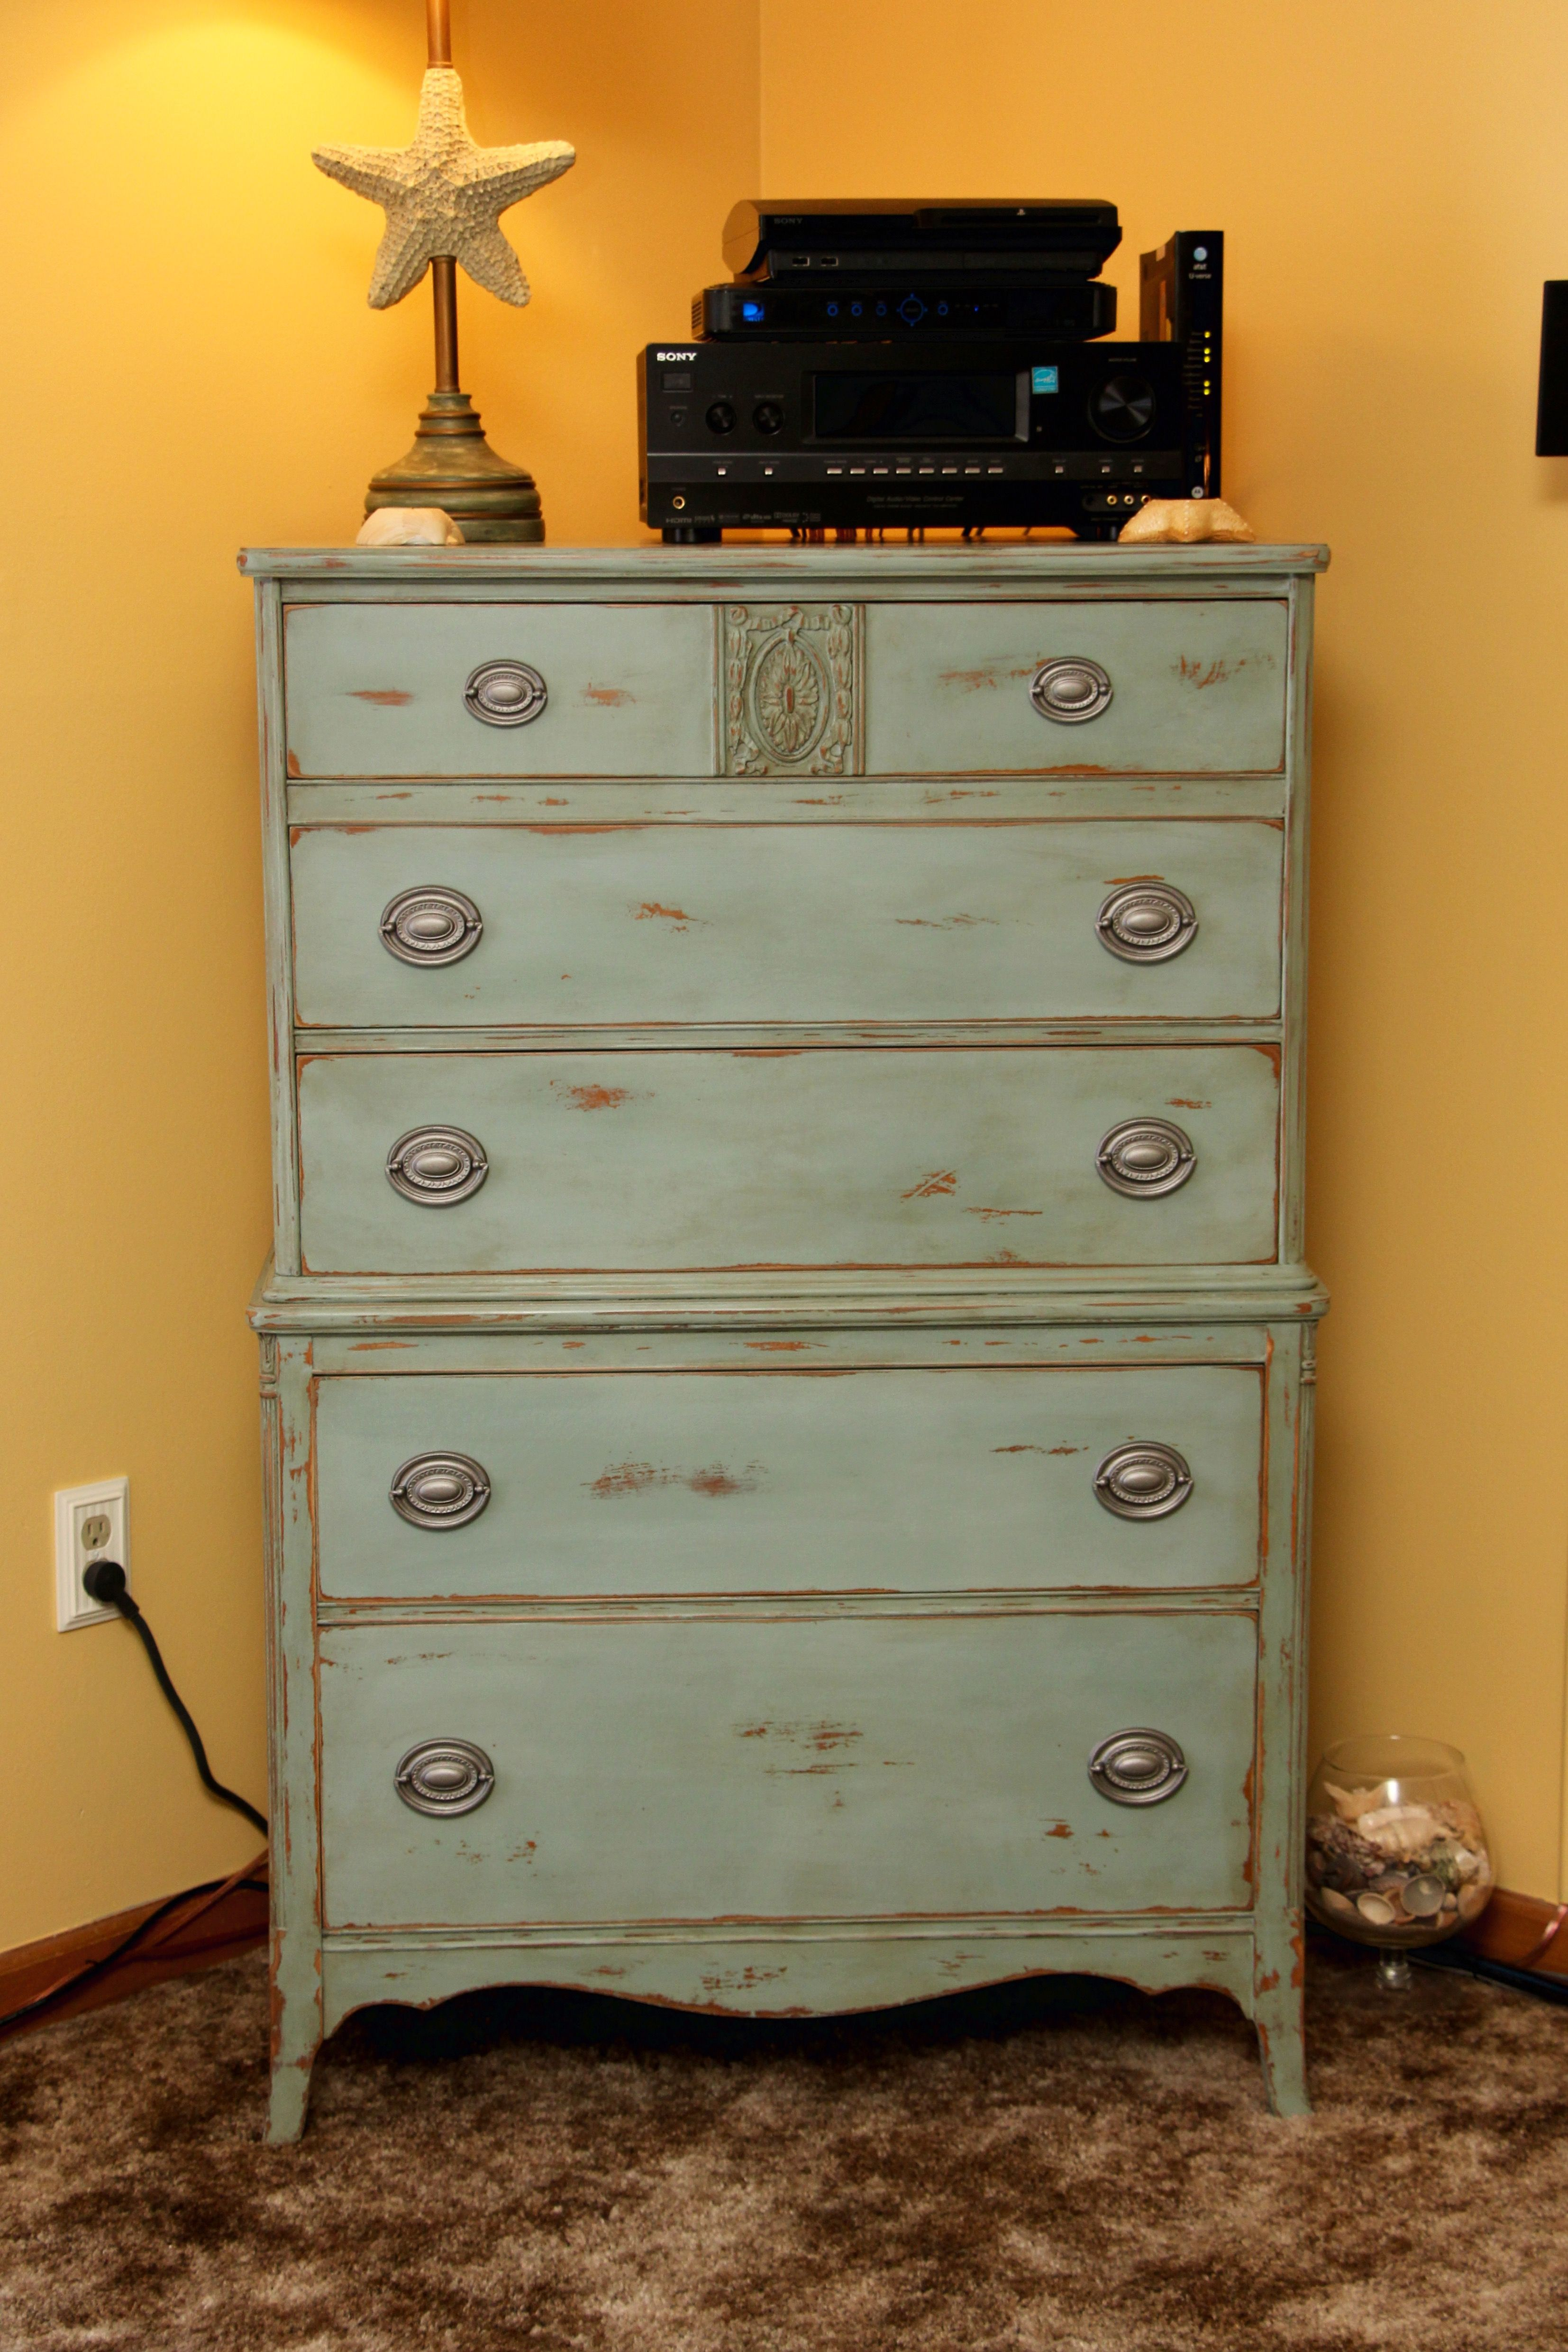 This Tall Boy chest of drawers is painted in a Duck Egg Blue and is